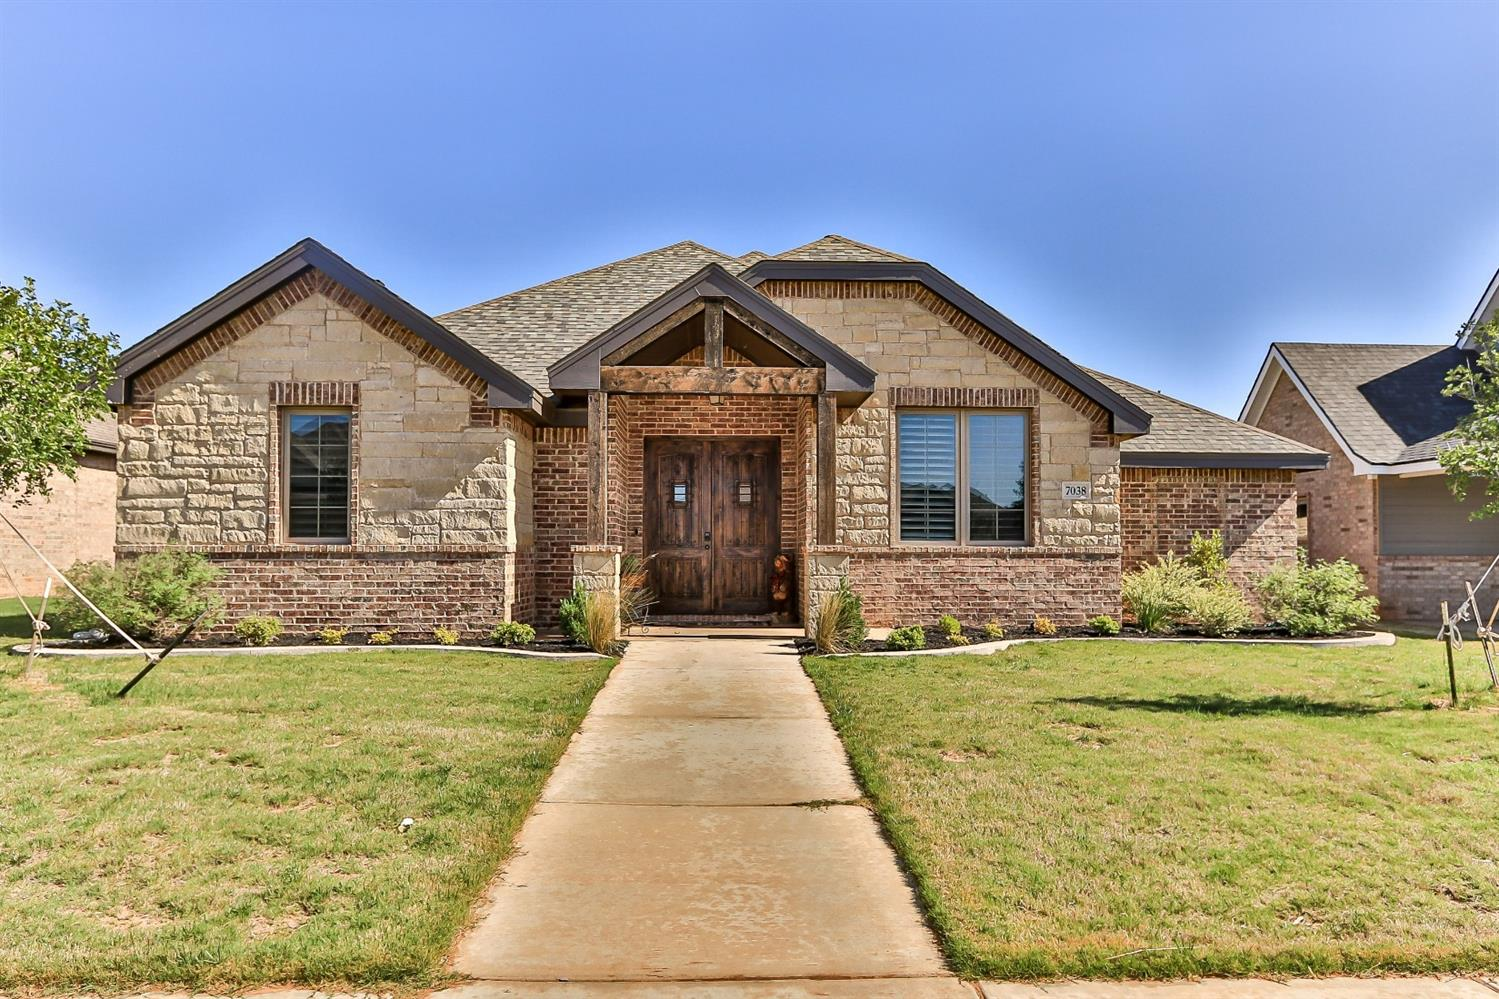 The beautiful 4/3.5/2 in Frenship ISD you have been waiting to own. Located on cul-de-sac at The Ridge in Frenship ISD. Kitchen features beautiful cabinetry, Whirlpool Gold double ovens (one is convection), gas range, and a beautiful quartz island. An open-concept living allows vision to an inviting brick FP in the living room. Notice the gorgeous light fixtures in home. Outside there is a perfectly placed shaded patio with tv & mount. Features include: Alexa capable to turn on underneath counter cabinet lighting as well as in laundry room. The desk in living room is easily moveable and has been the perfect spot for kids doing homework. Master is isolated with large closet, stunning shower, and separate vanity areas. Bedrooms 2 & 3 share a Jack and Jill bathroom. Bedroom 4 is isolated from all others and adjacent to a full size bathroom. Near the laundry room is mudroom, pantry, and 1/2 bath. NEST thermostat, doorbell, TV & mount in oversized garage, bike racks, wall exercise convey.